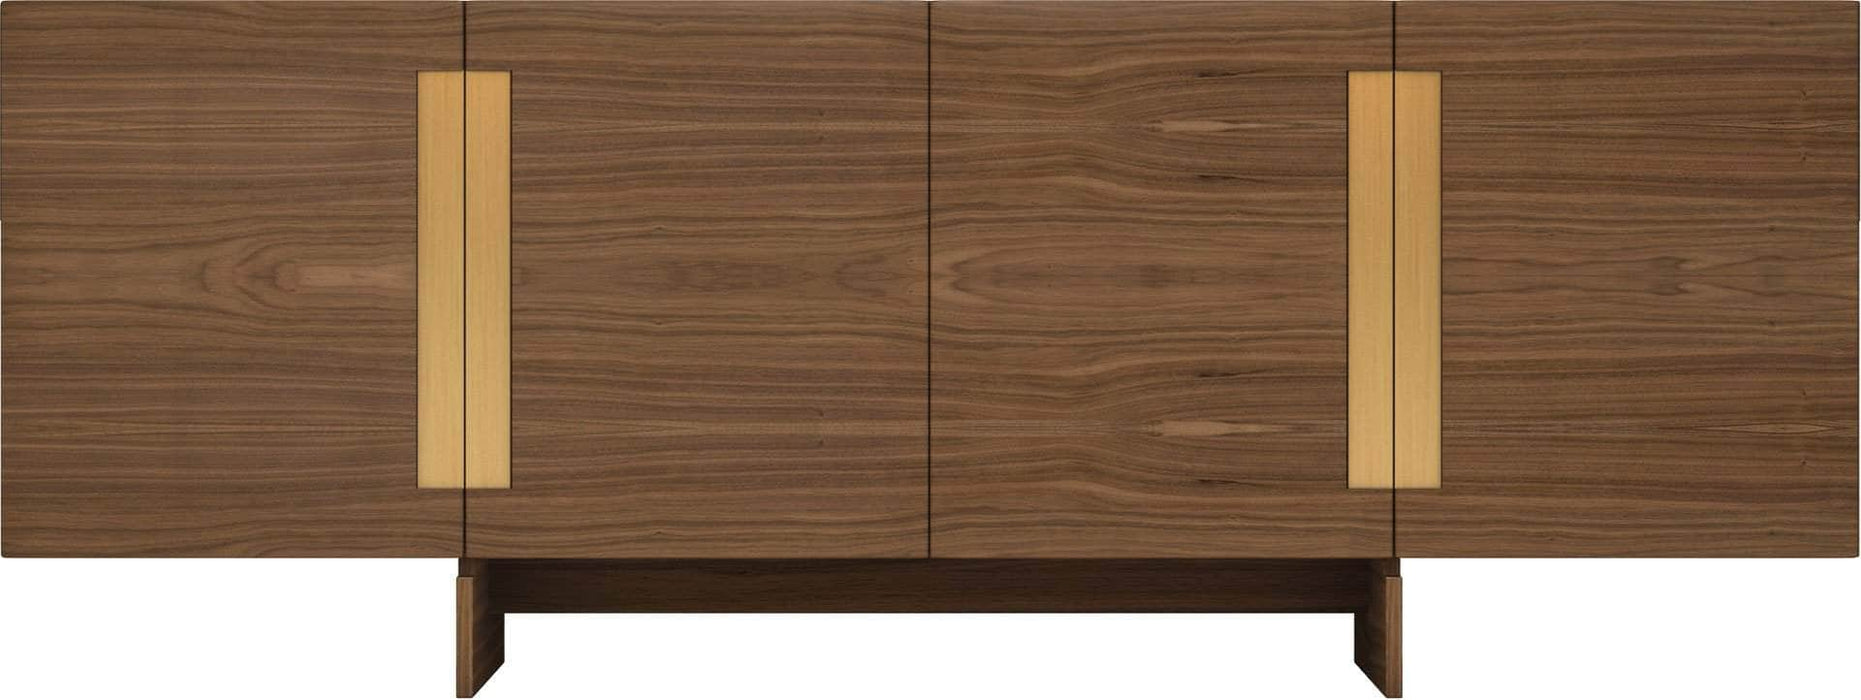 Pending - Modloft Sideboards Walnut Brixton Sideboard - Available in 2 Colors